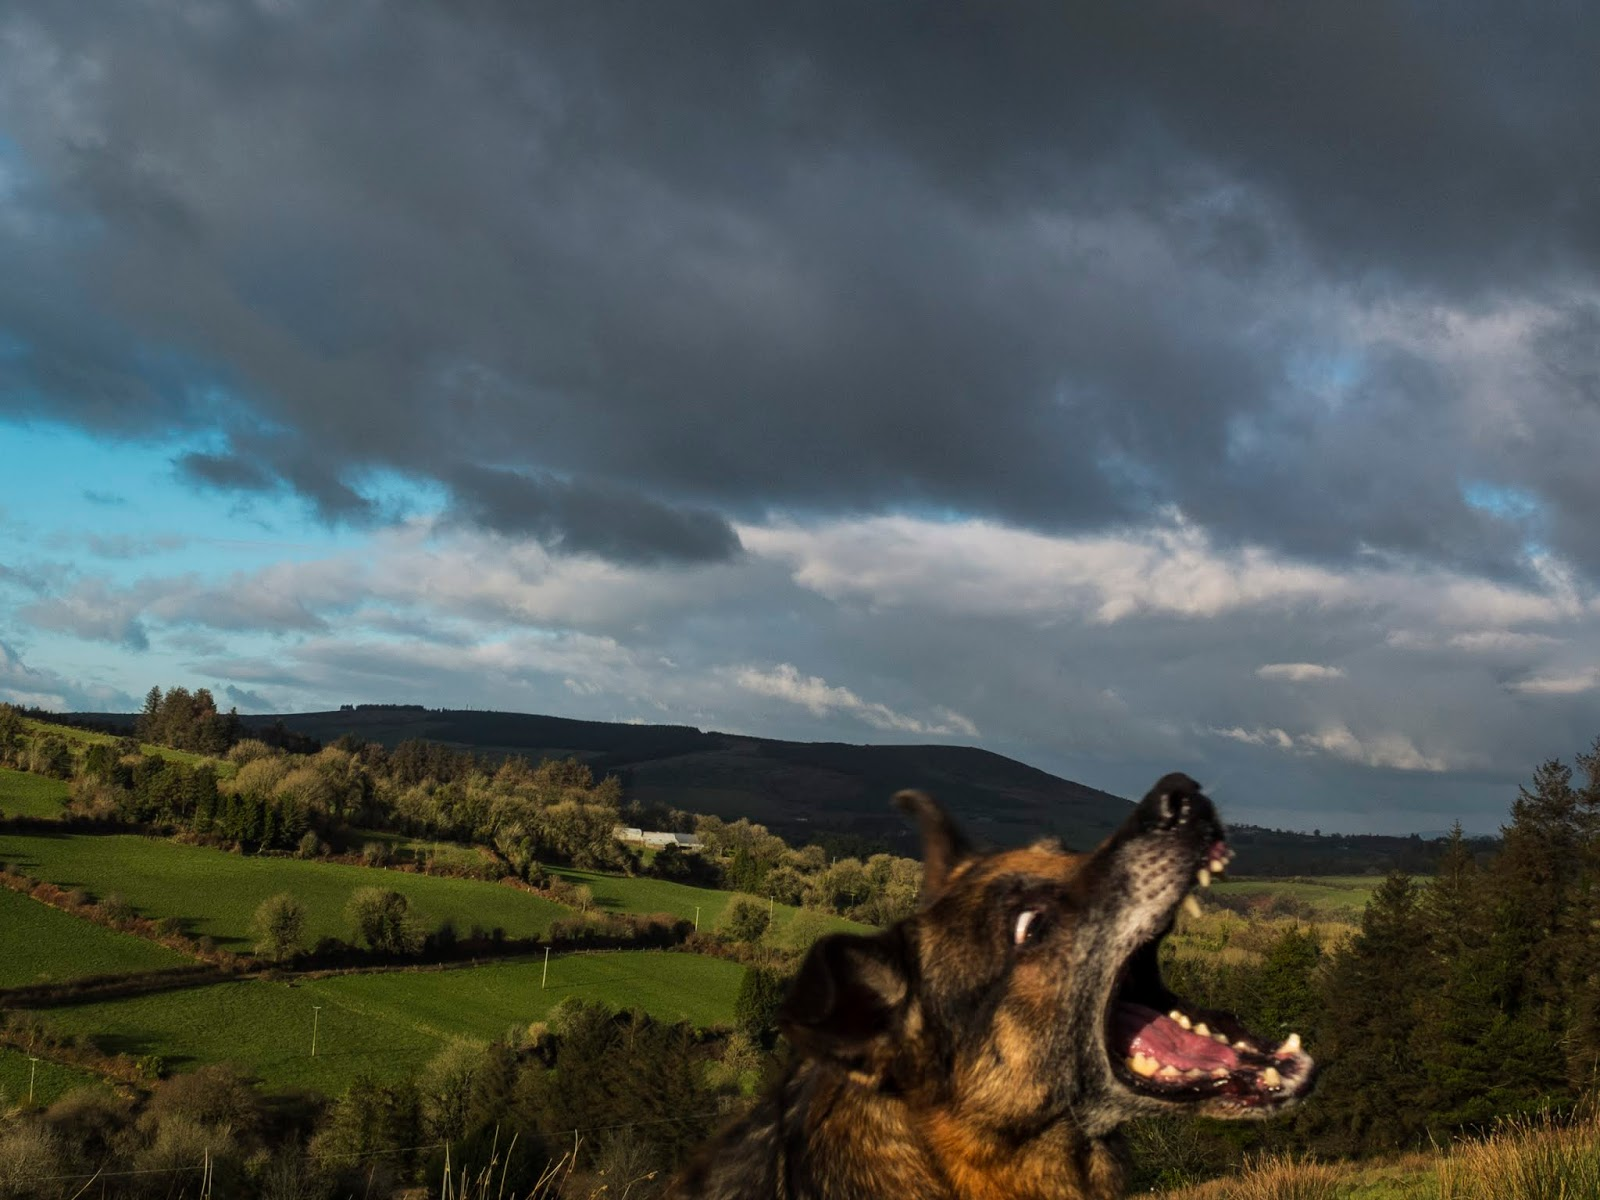 A German Shepherd with open jaws photo-bombing a landscape photograph.